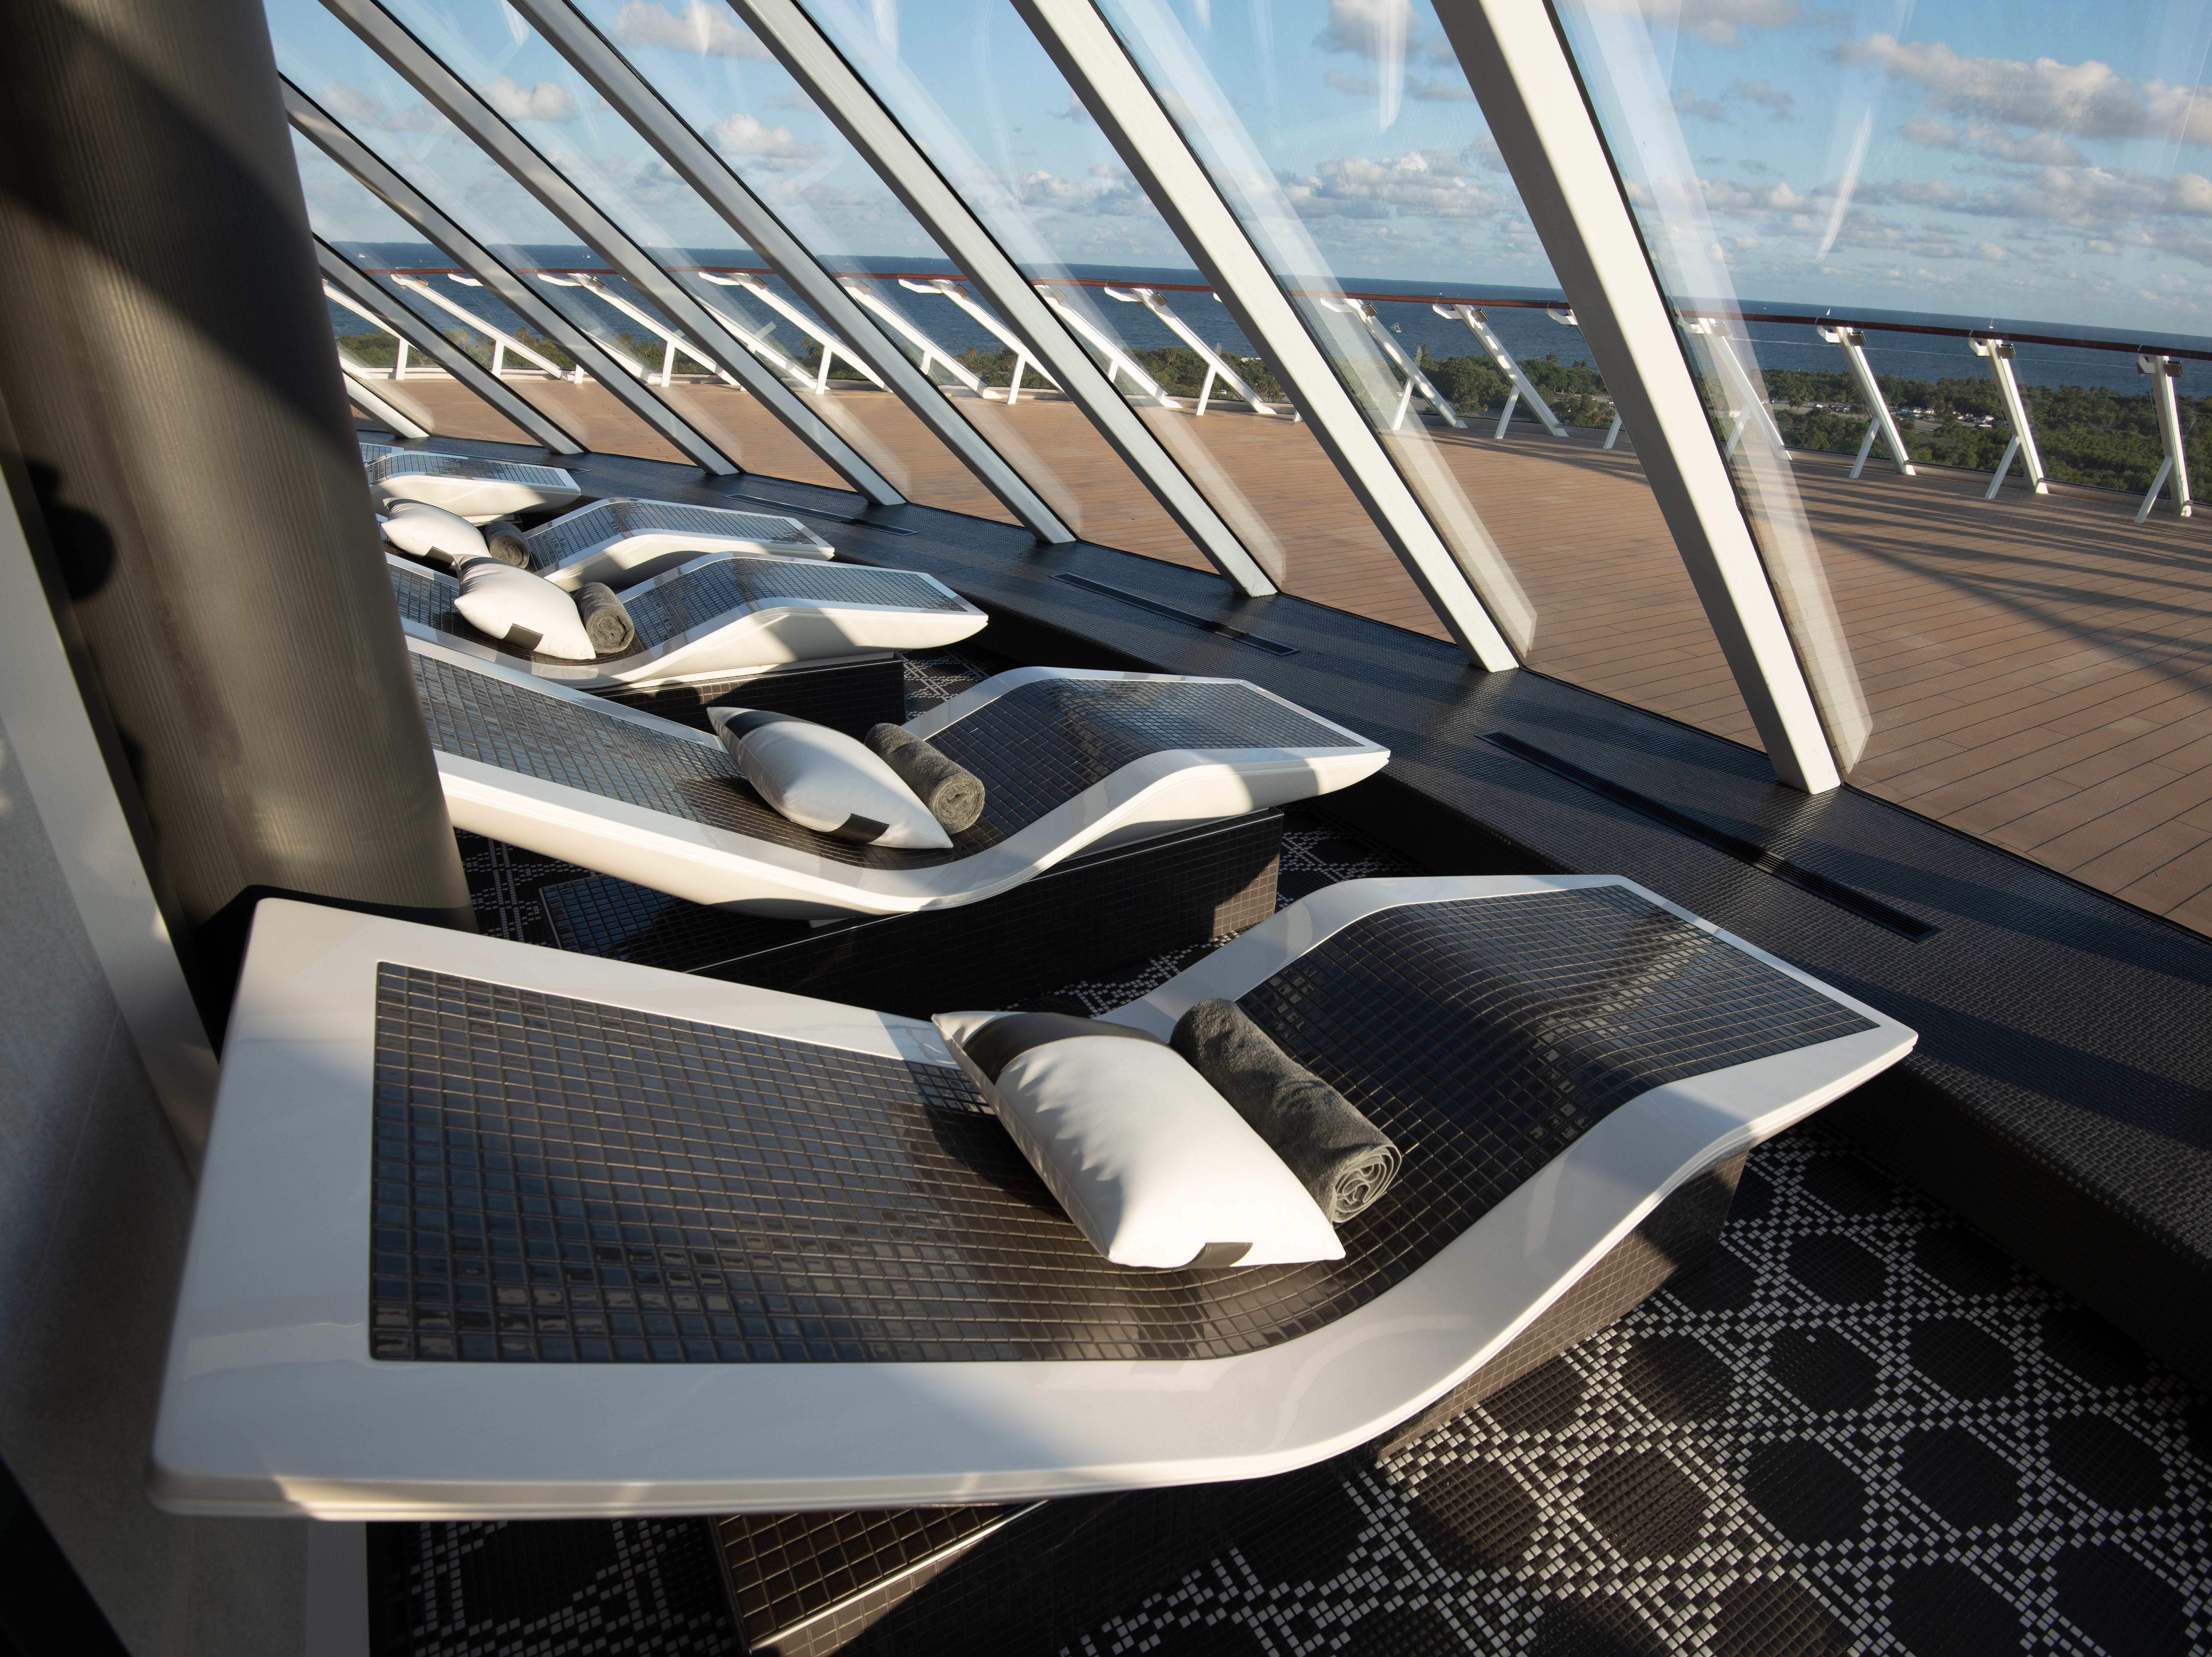 Heated lounge chairs are among the allures of the thermal area within the Celebrity Edge spa.